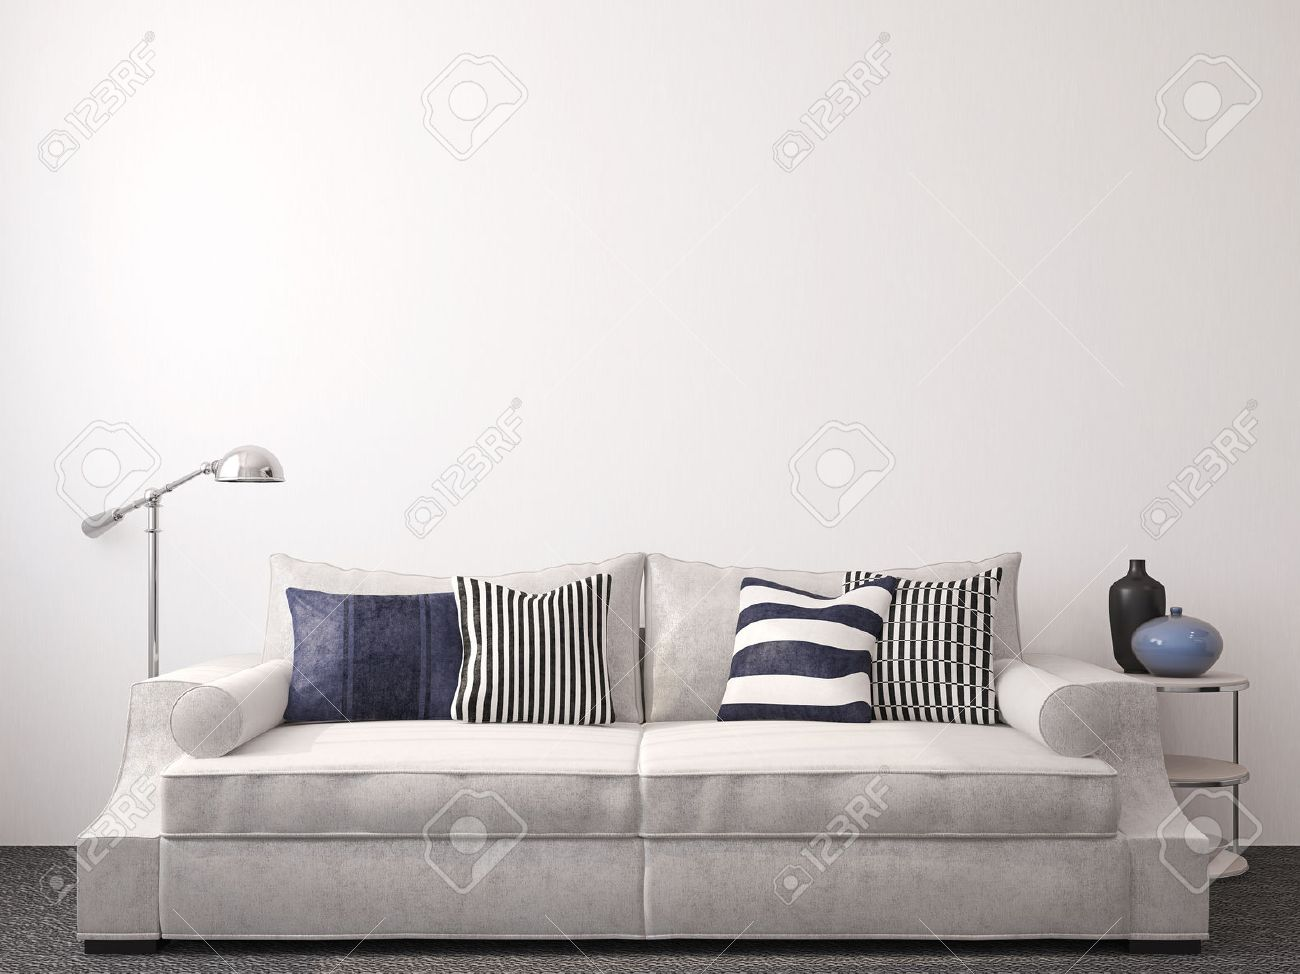 Imagens   Modern Living Room Interior With Couch Near Empty White Wall. 3d  Render.